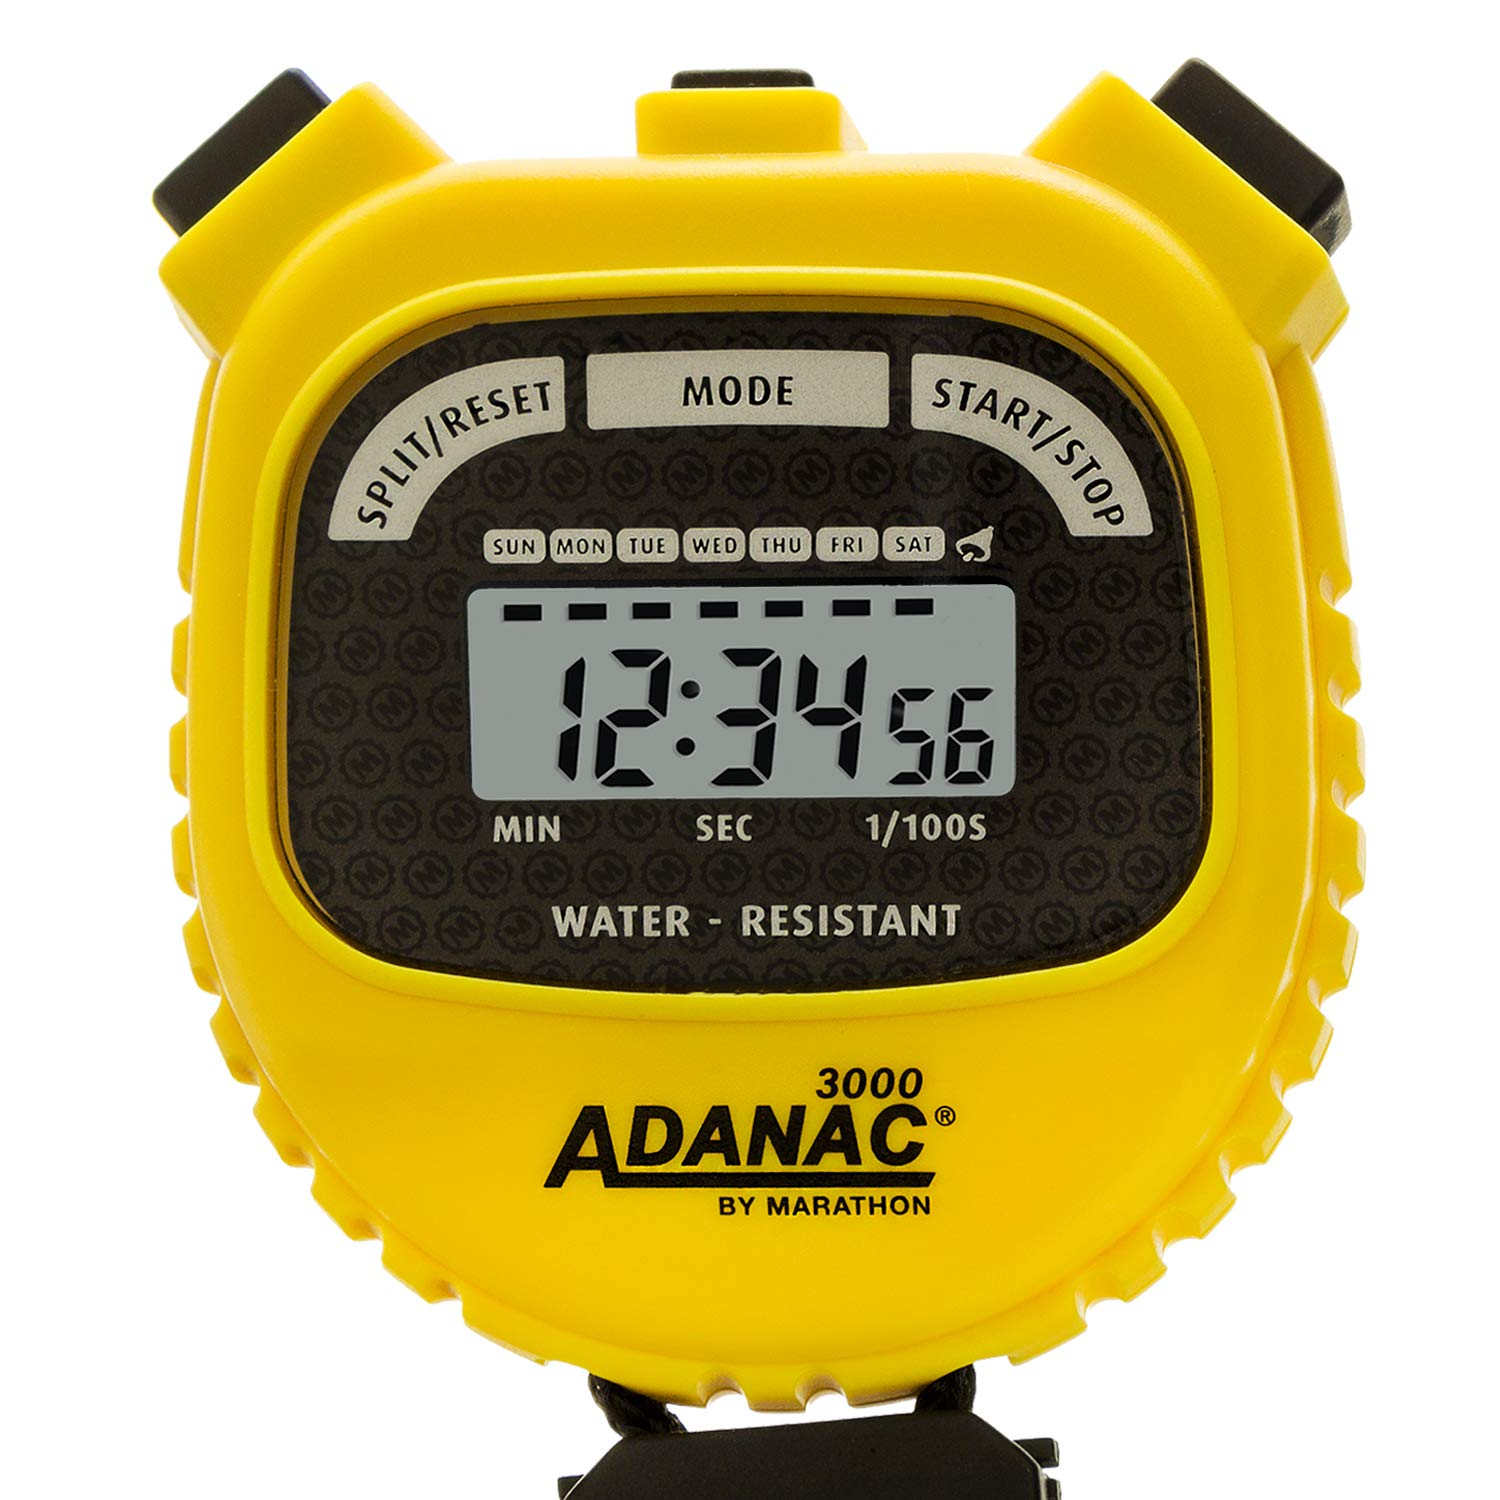 MARATHON Adanac 3000 Digital Sports Stopwatch Timer with Extra Large Display and Buttons, Water Resistant. Color- Yellow